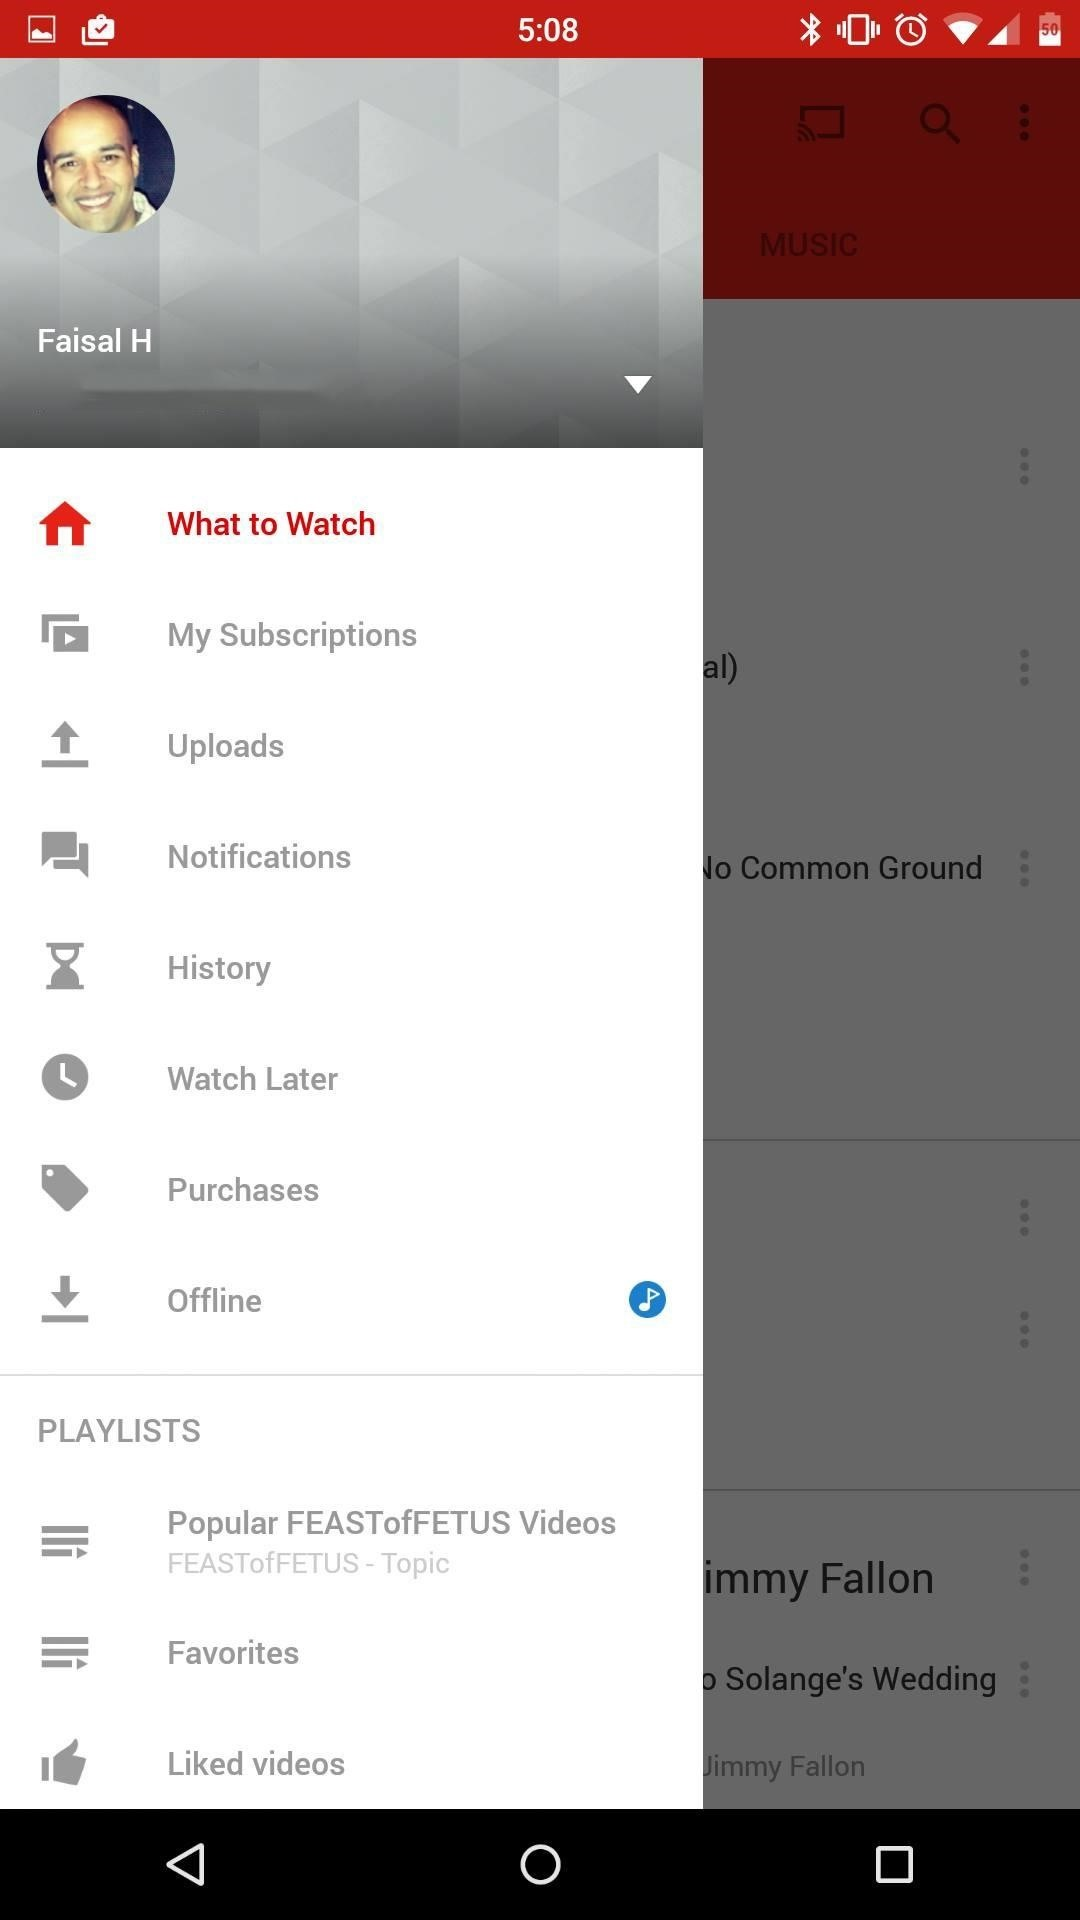 YouTube Finally Receives Its Material Design Makeover (APK Inside)